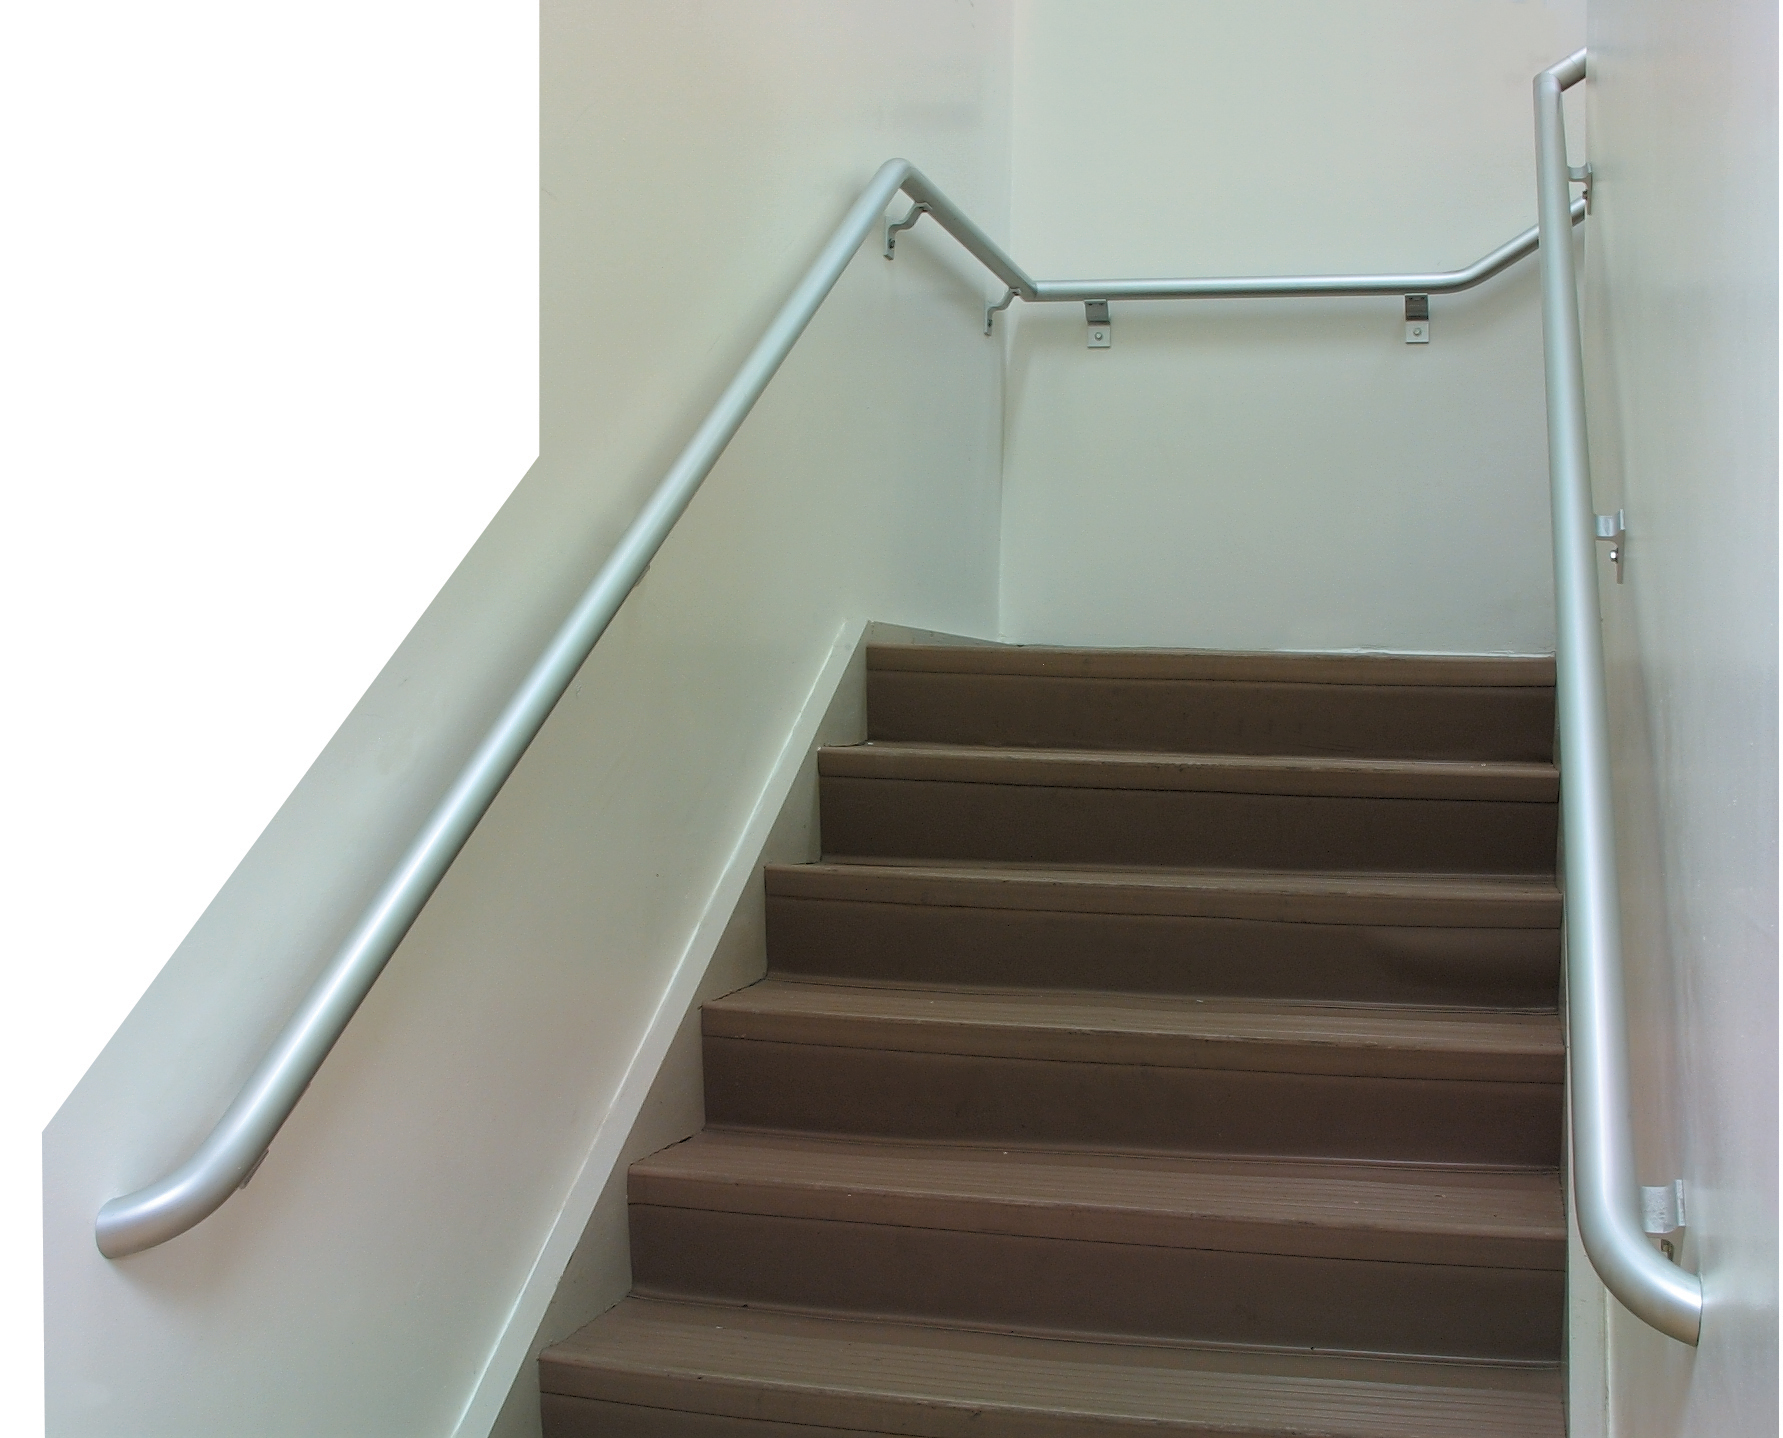 Stairway with Pipe Handrail on Both Sides